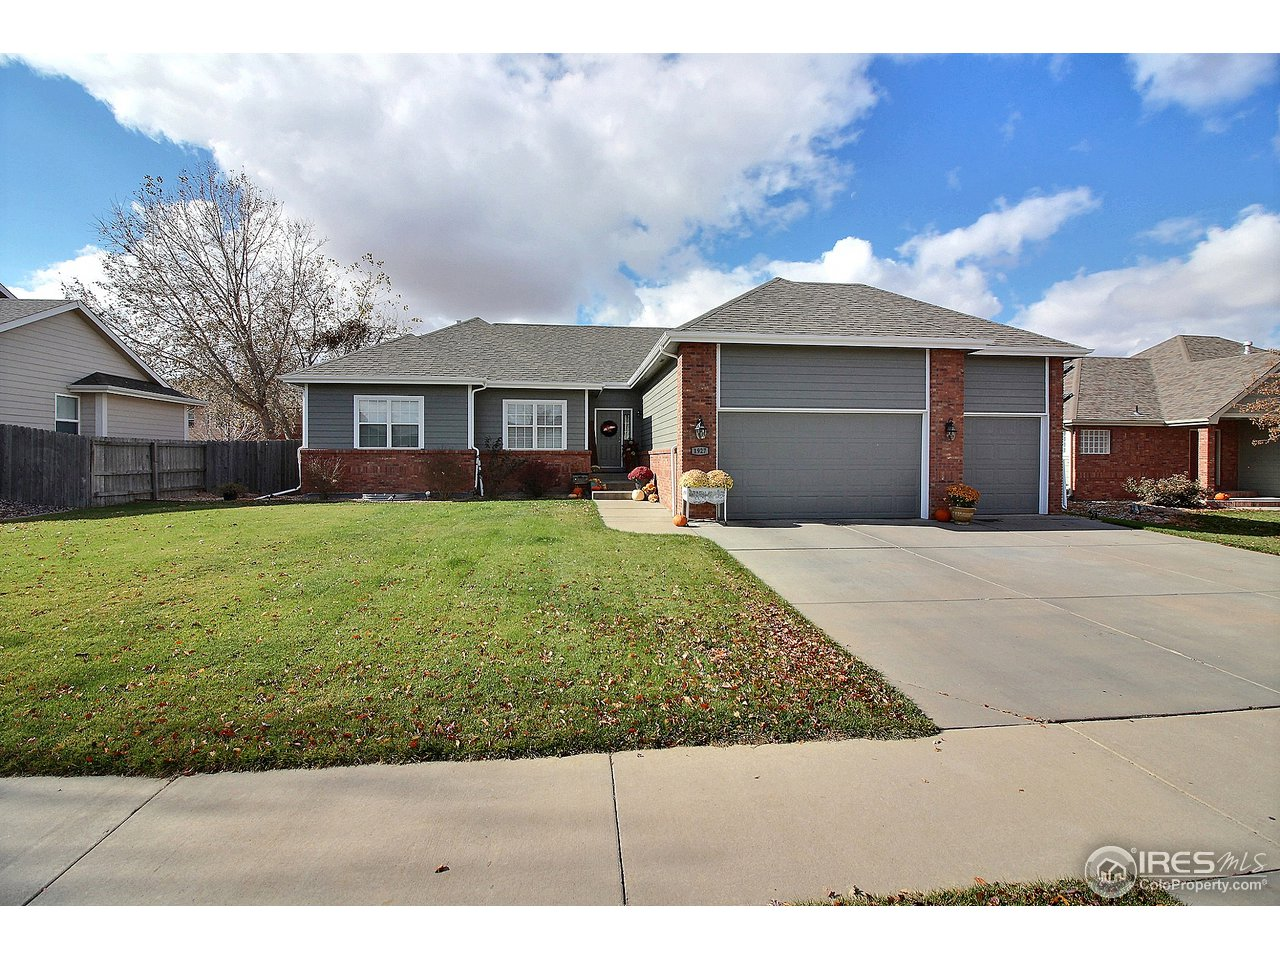 Open and spacious main floor living in Mountain Vista!  You're going to love this wonderful ranch plan!  Open kitchen and living area, great breakfast bar, upgraded stainless steel appliances, granite counters, all wood floors on the main level, knotty Alder cabinets and main floor laundry. Covered deck, fenced yard with sprinkler system, 3 car garage and an unfinished basement for room to grow!